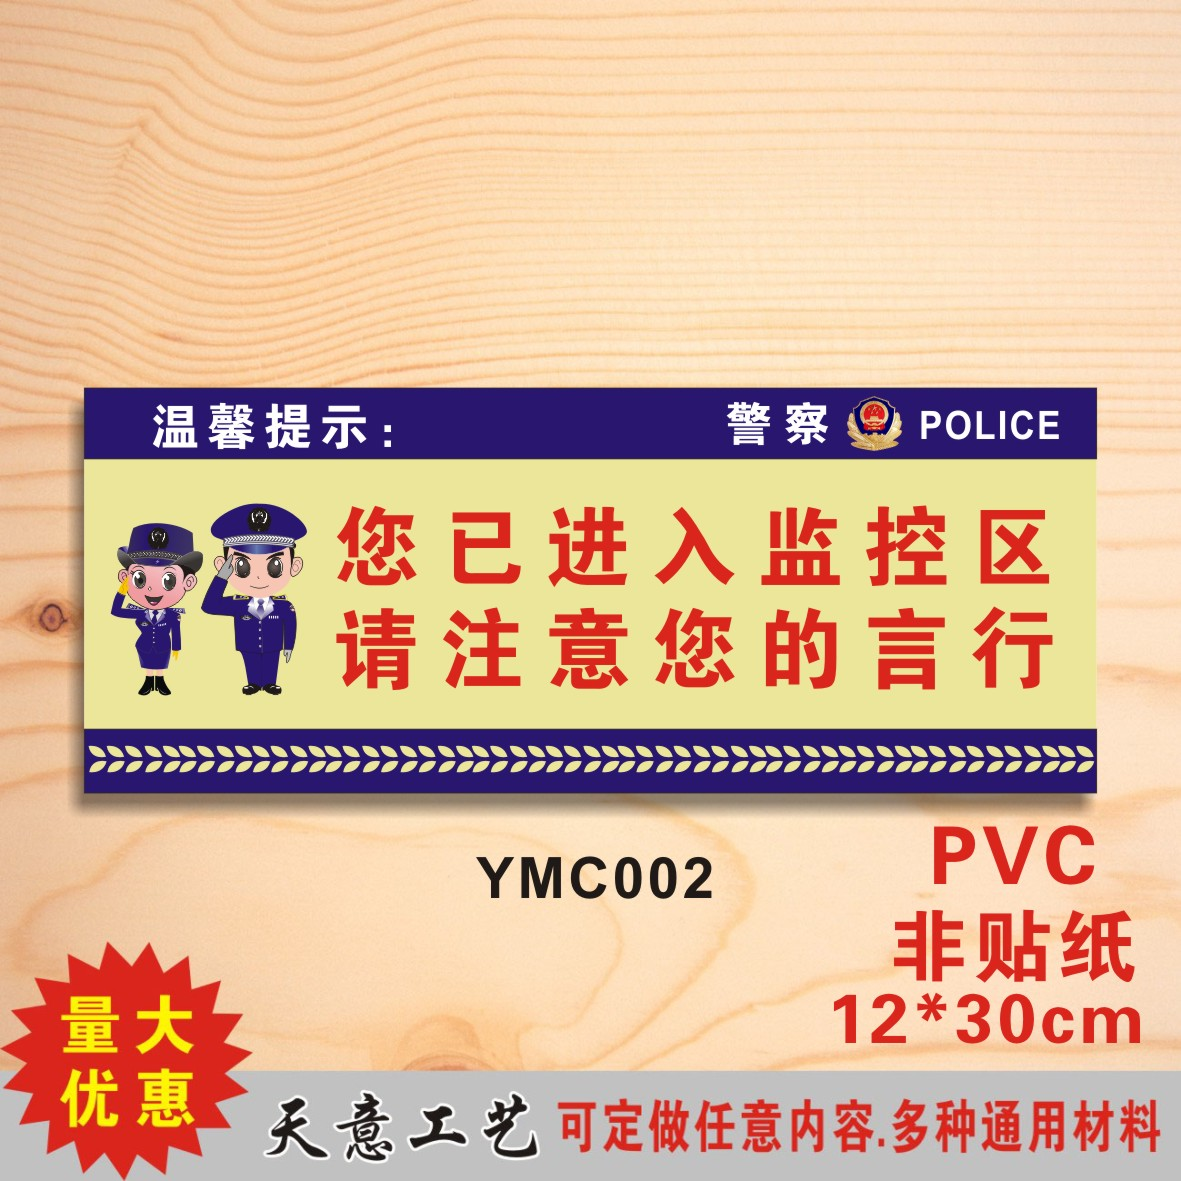 Police remind you that you have entered the warning board area. Please pay attention to your sign board